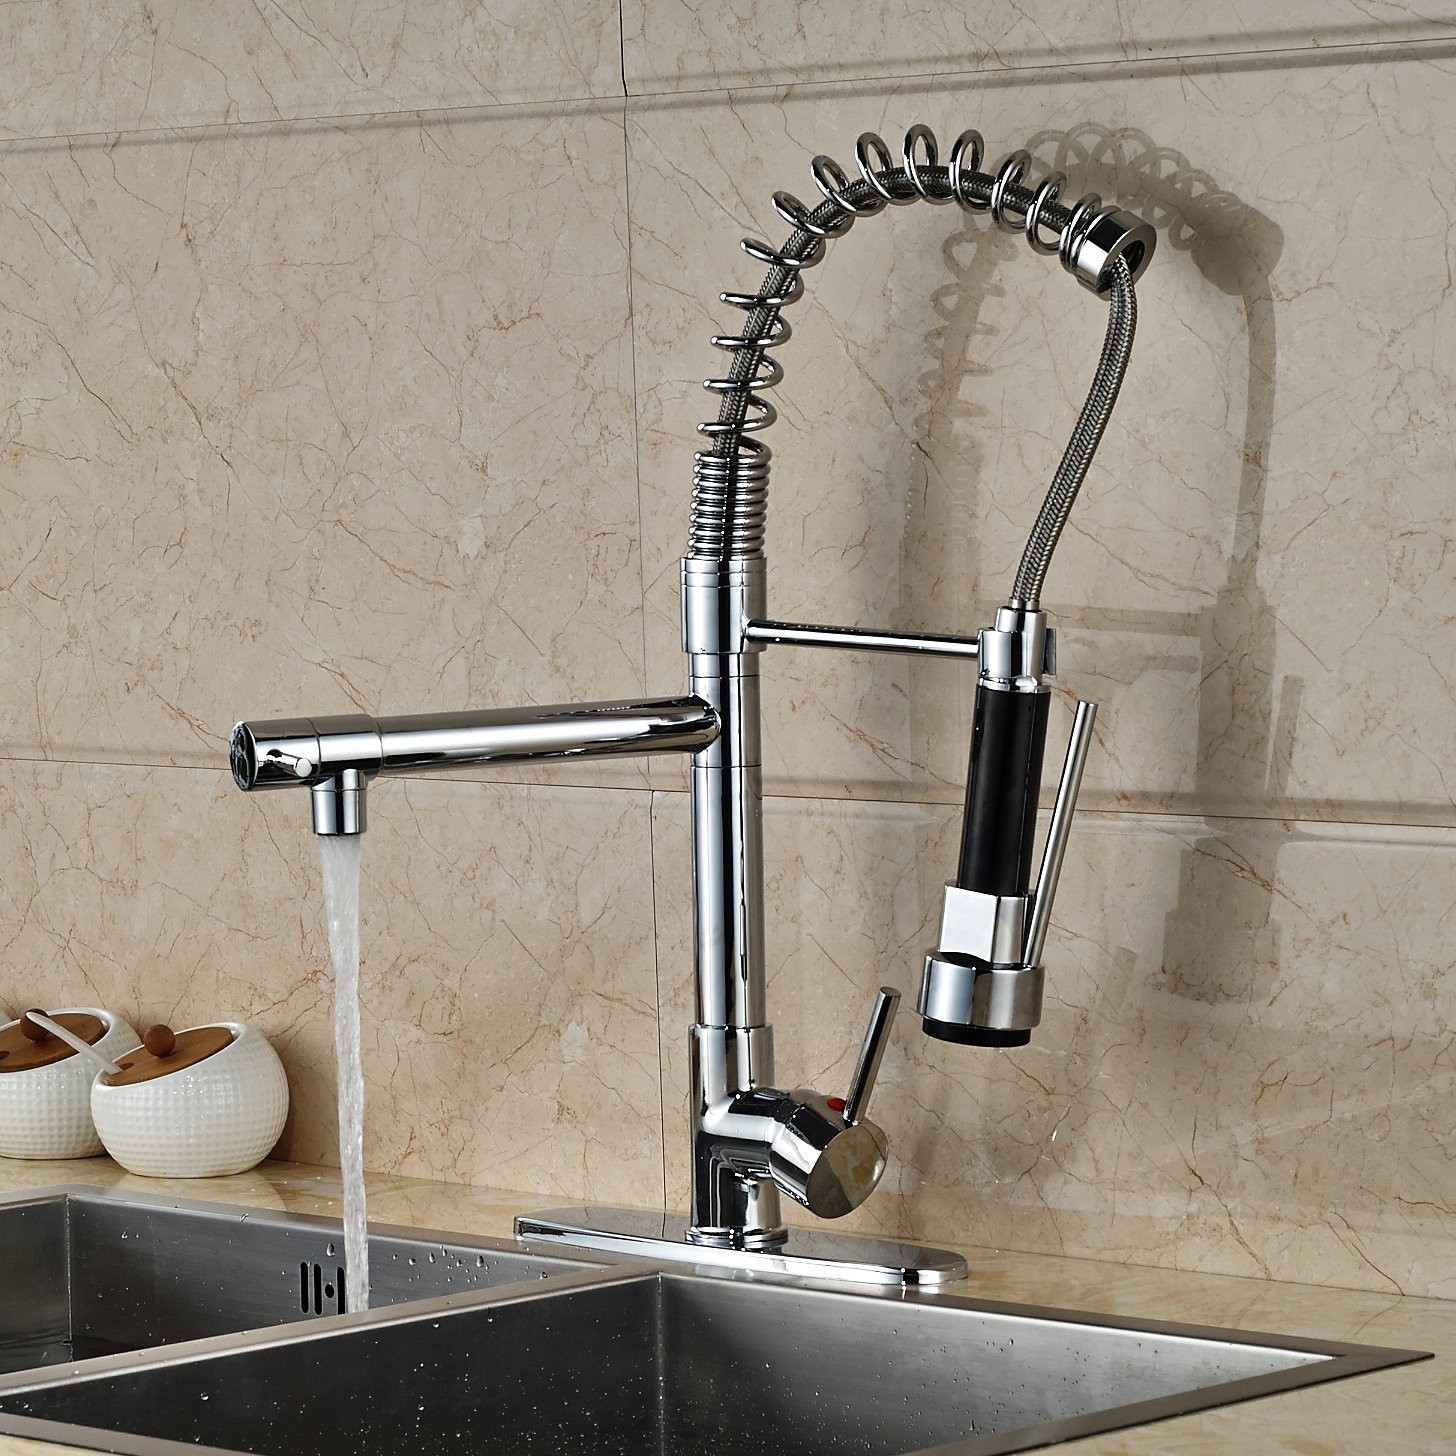 Doubs Deck Mounted Kitchen Sink Faucet With Pull Down Spray